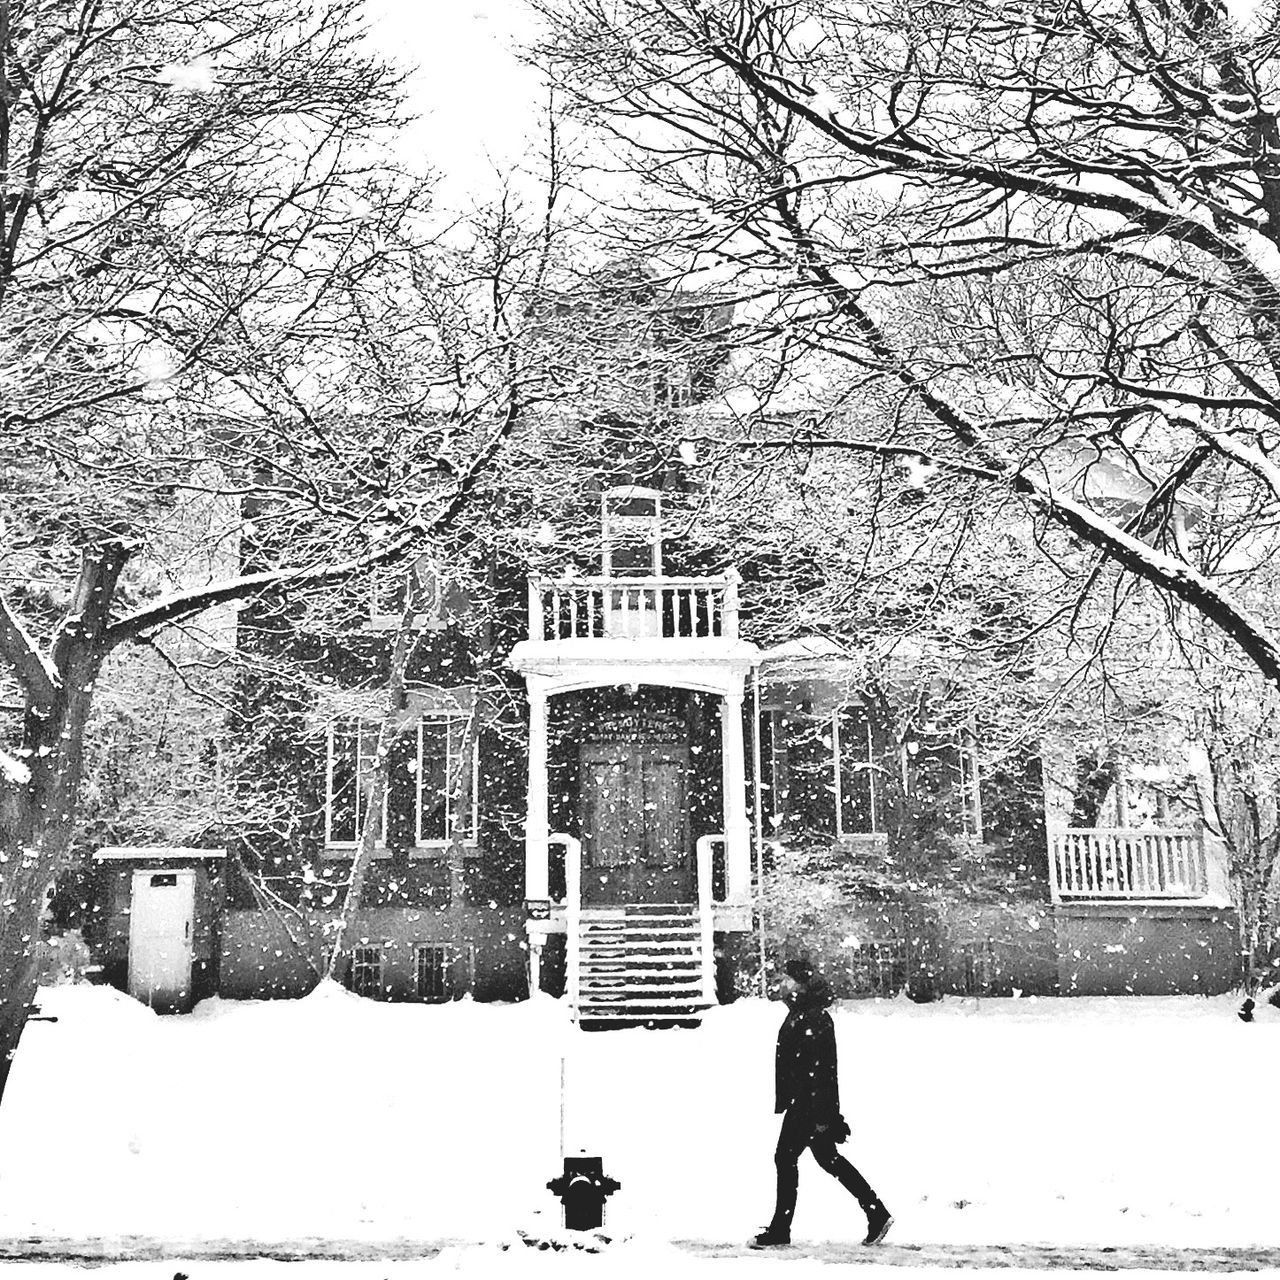 I love winter :) EyeEm Best Shots - Black + White Streetphotography Blackandwhite Montréal The Week Of Eyeem Snow ❄ Bw_collection Streetphoto_bw AMPt Community Winter